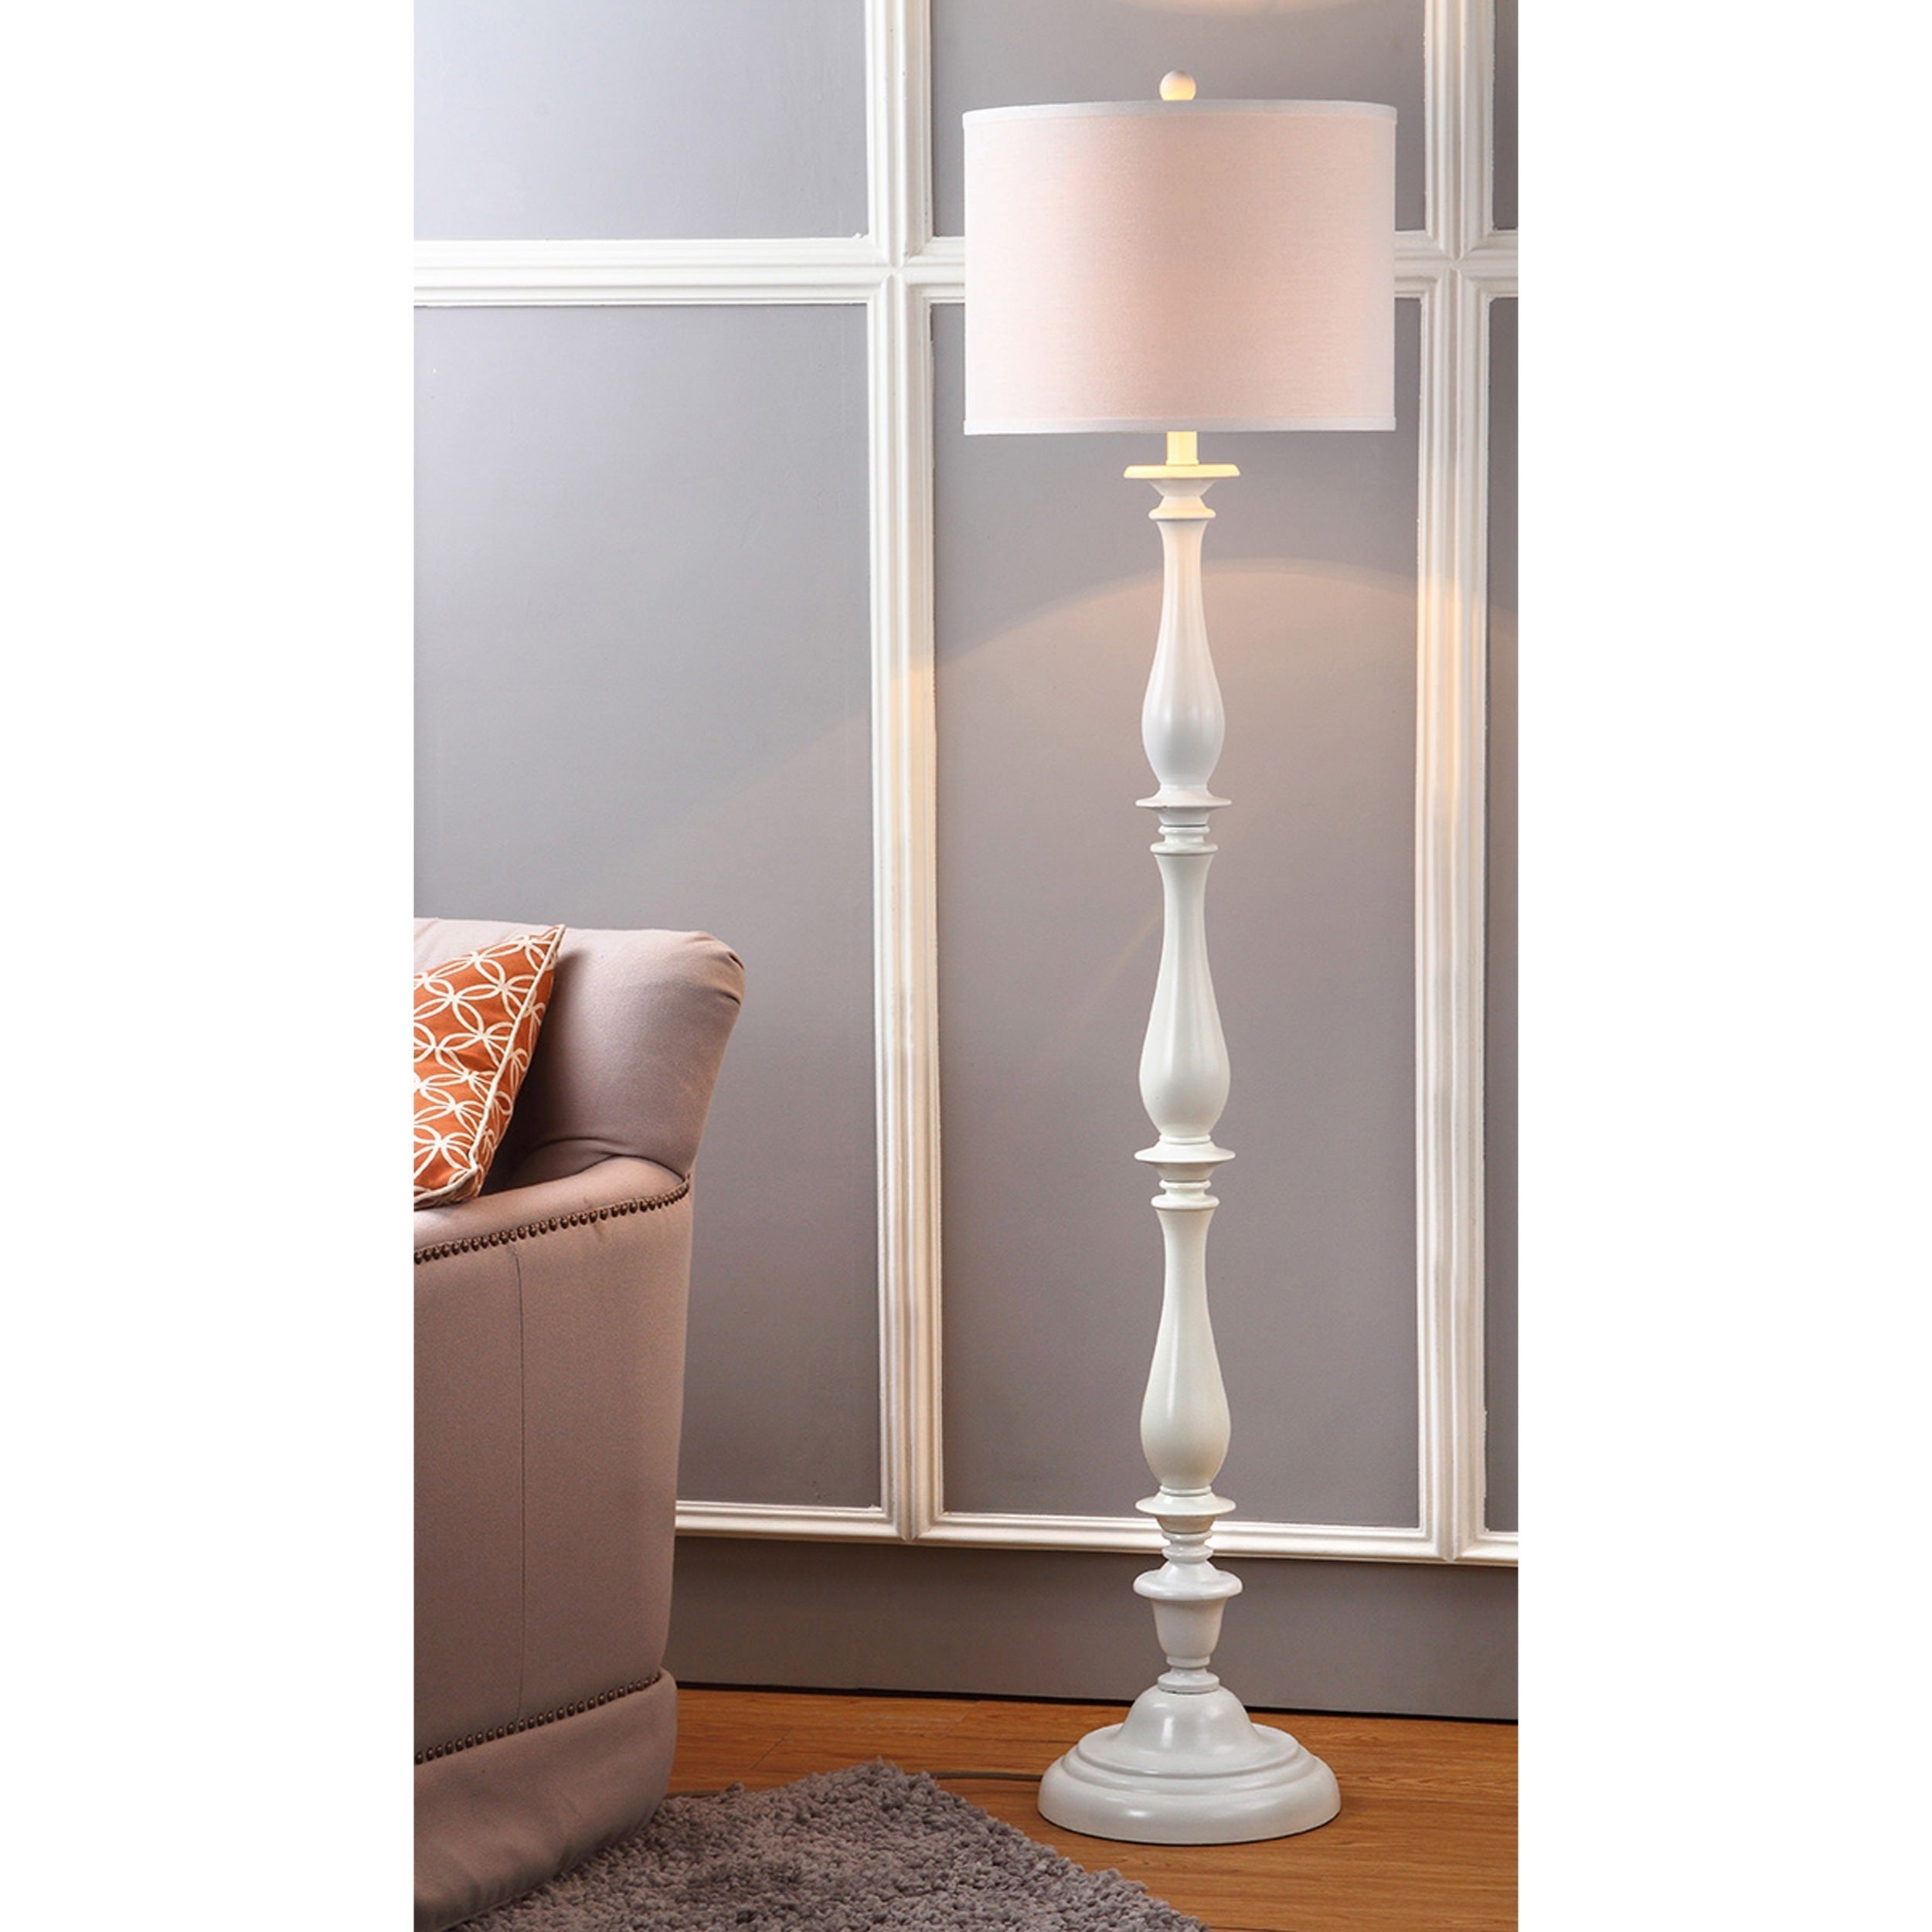 Shop safavieh lighting 62 inch bessie candlestick white floor lamp shop safavieh lighting 62 inch bessie candlestick white floor lamp on sale free shipping today overstock 9525155 aloadofball Image collections